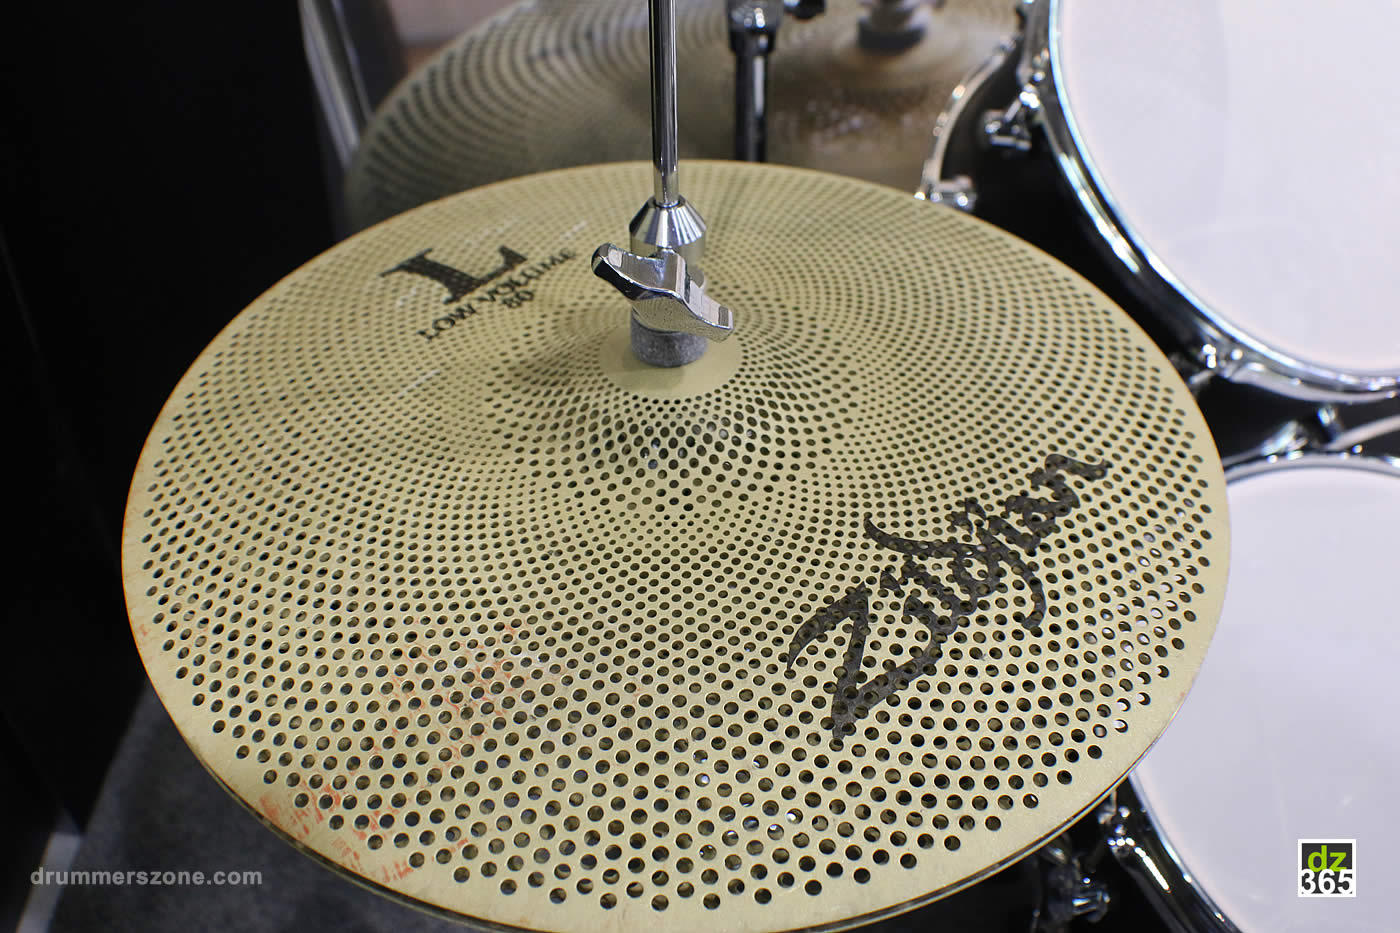 drummerszone news video demos of the new zildjian cymbals for 2017. Black Bedroom Furniture Sets. Home Design Ideas